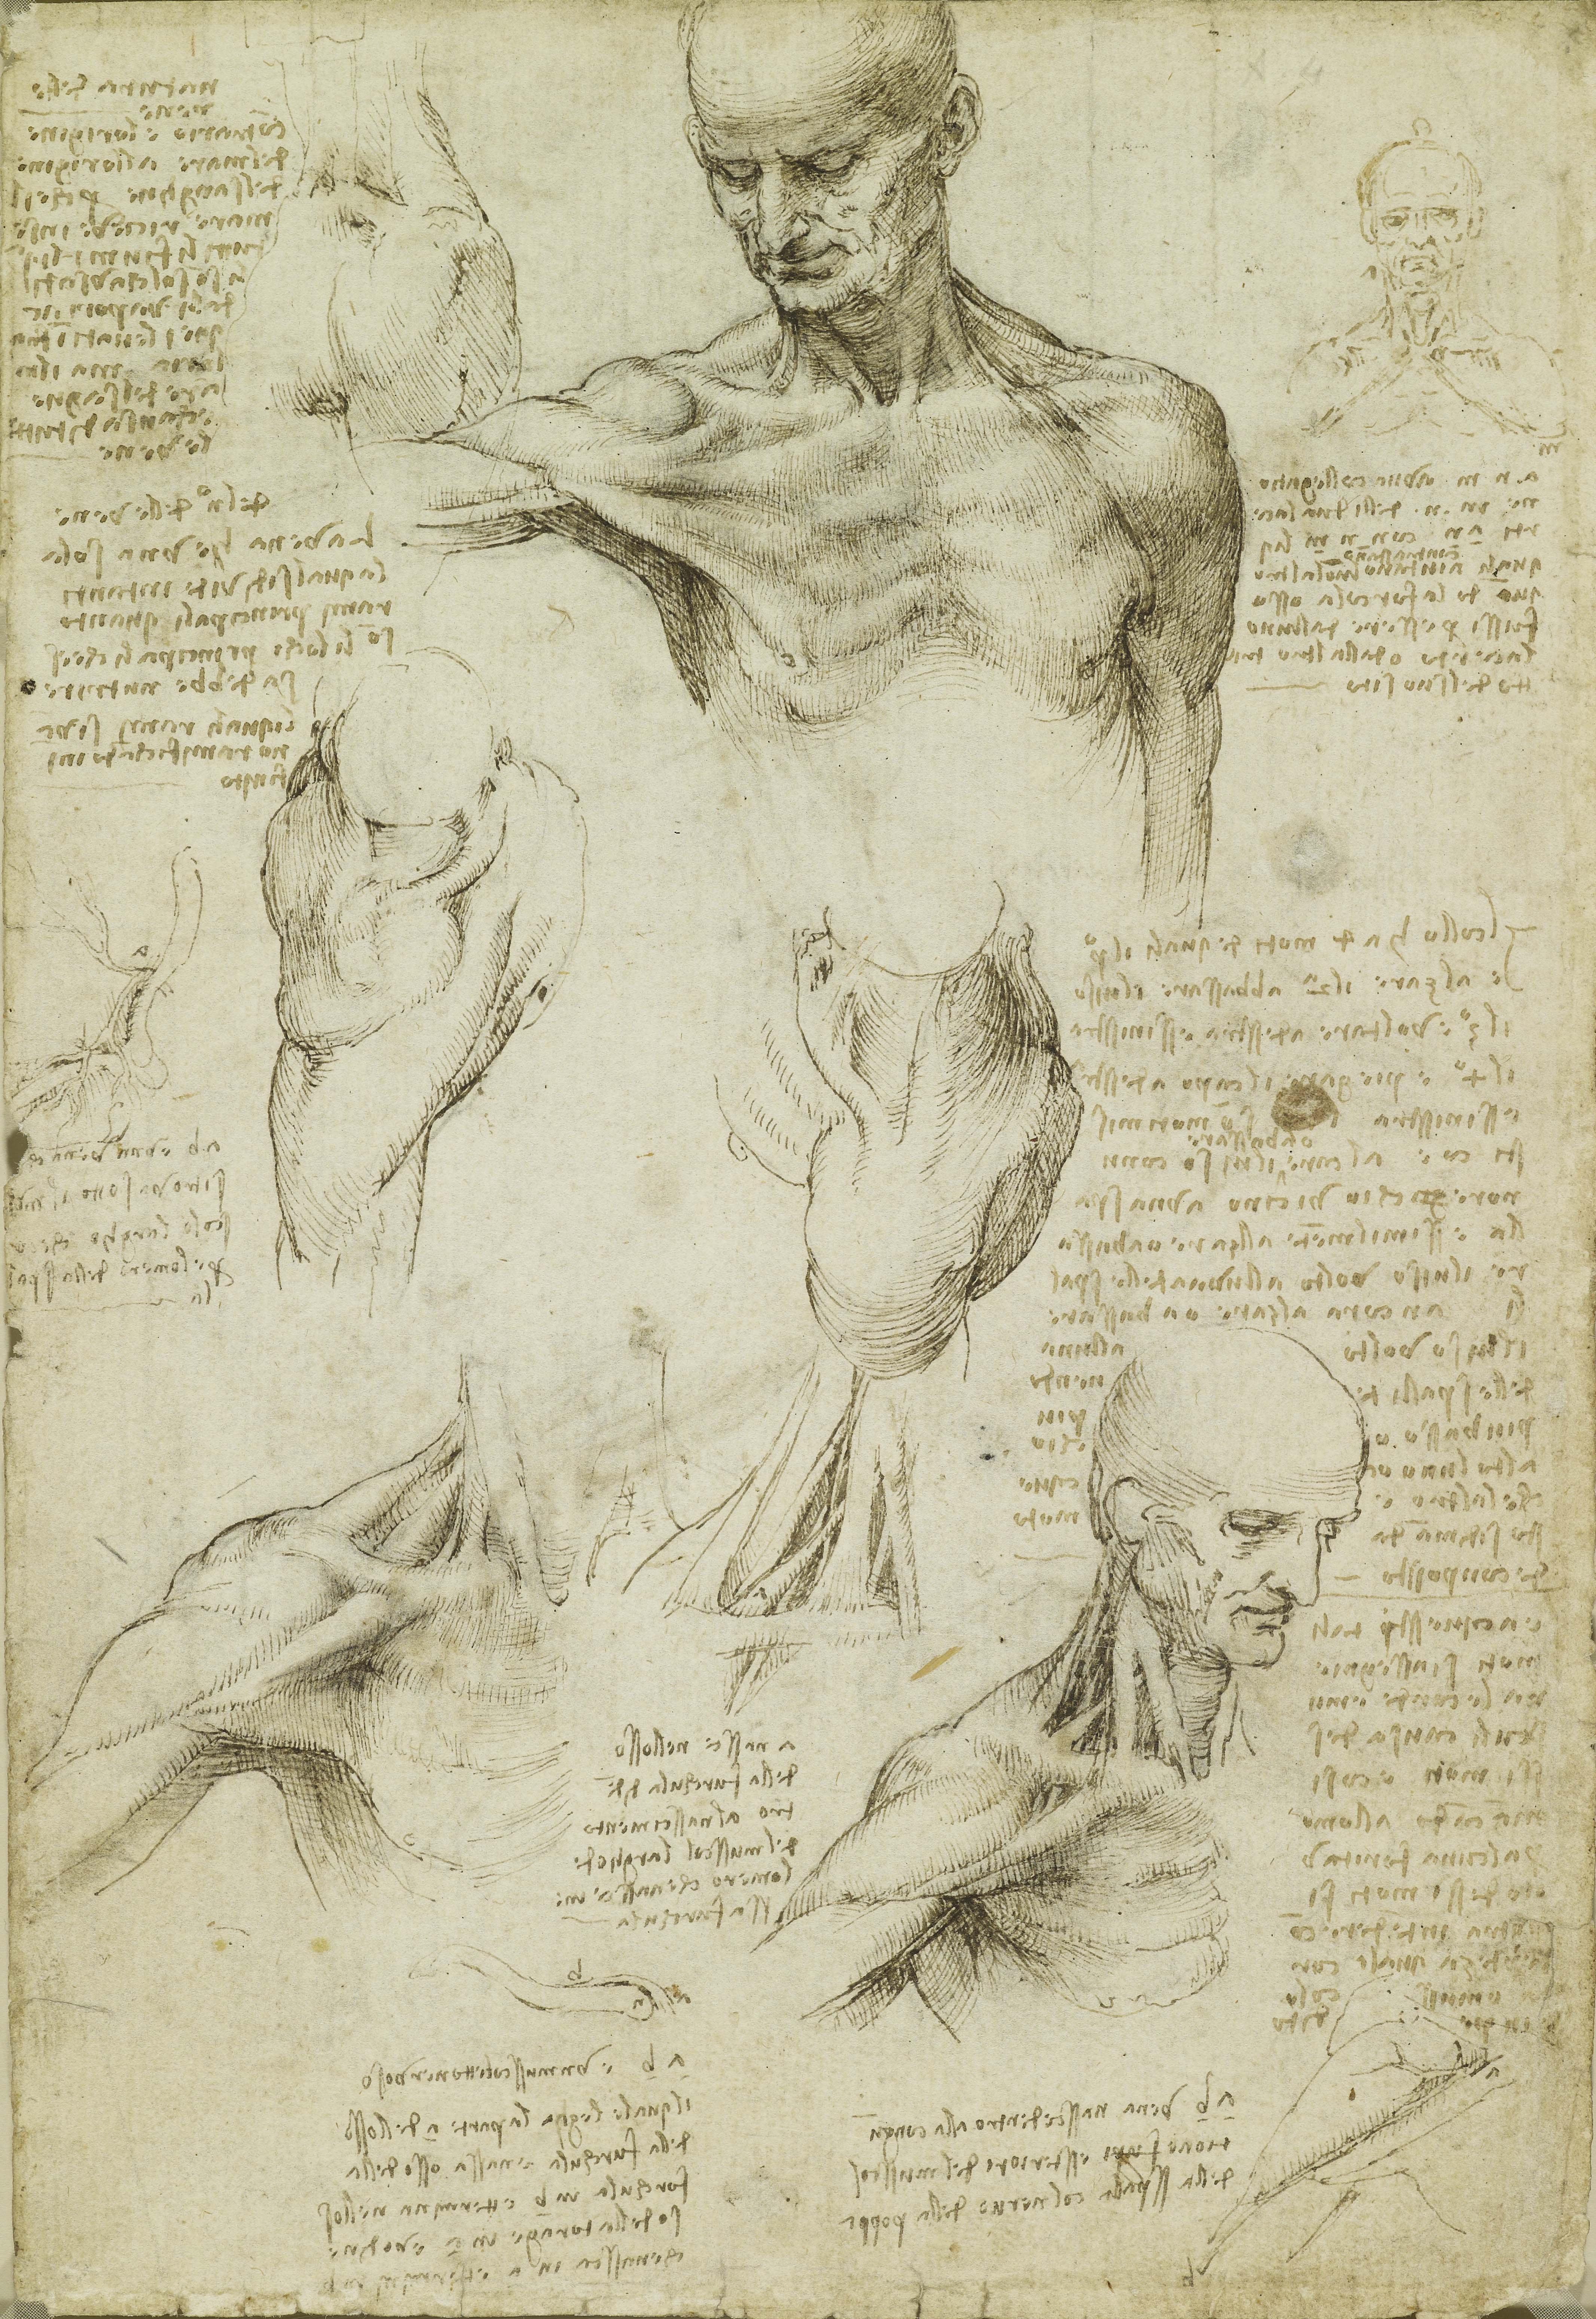 Leonardo da Vinci, The Anatomy of the Shpulder and Neck, c. 1510-11. Pen and brown ink with wash over paper, 29.2 x 19.8 cm. Royal Collection Trust/ Her Majesty Queen Elisabeth II 2019